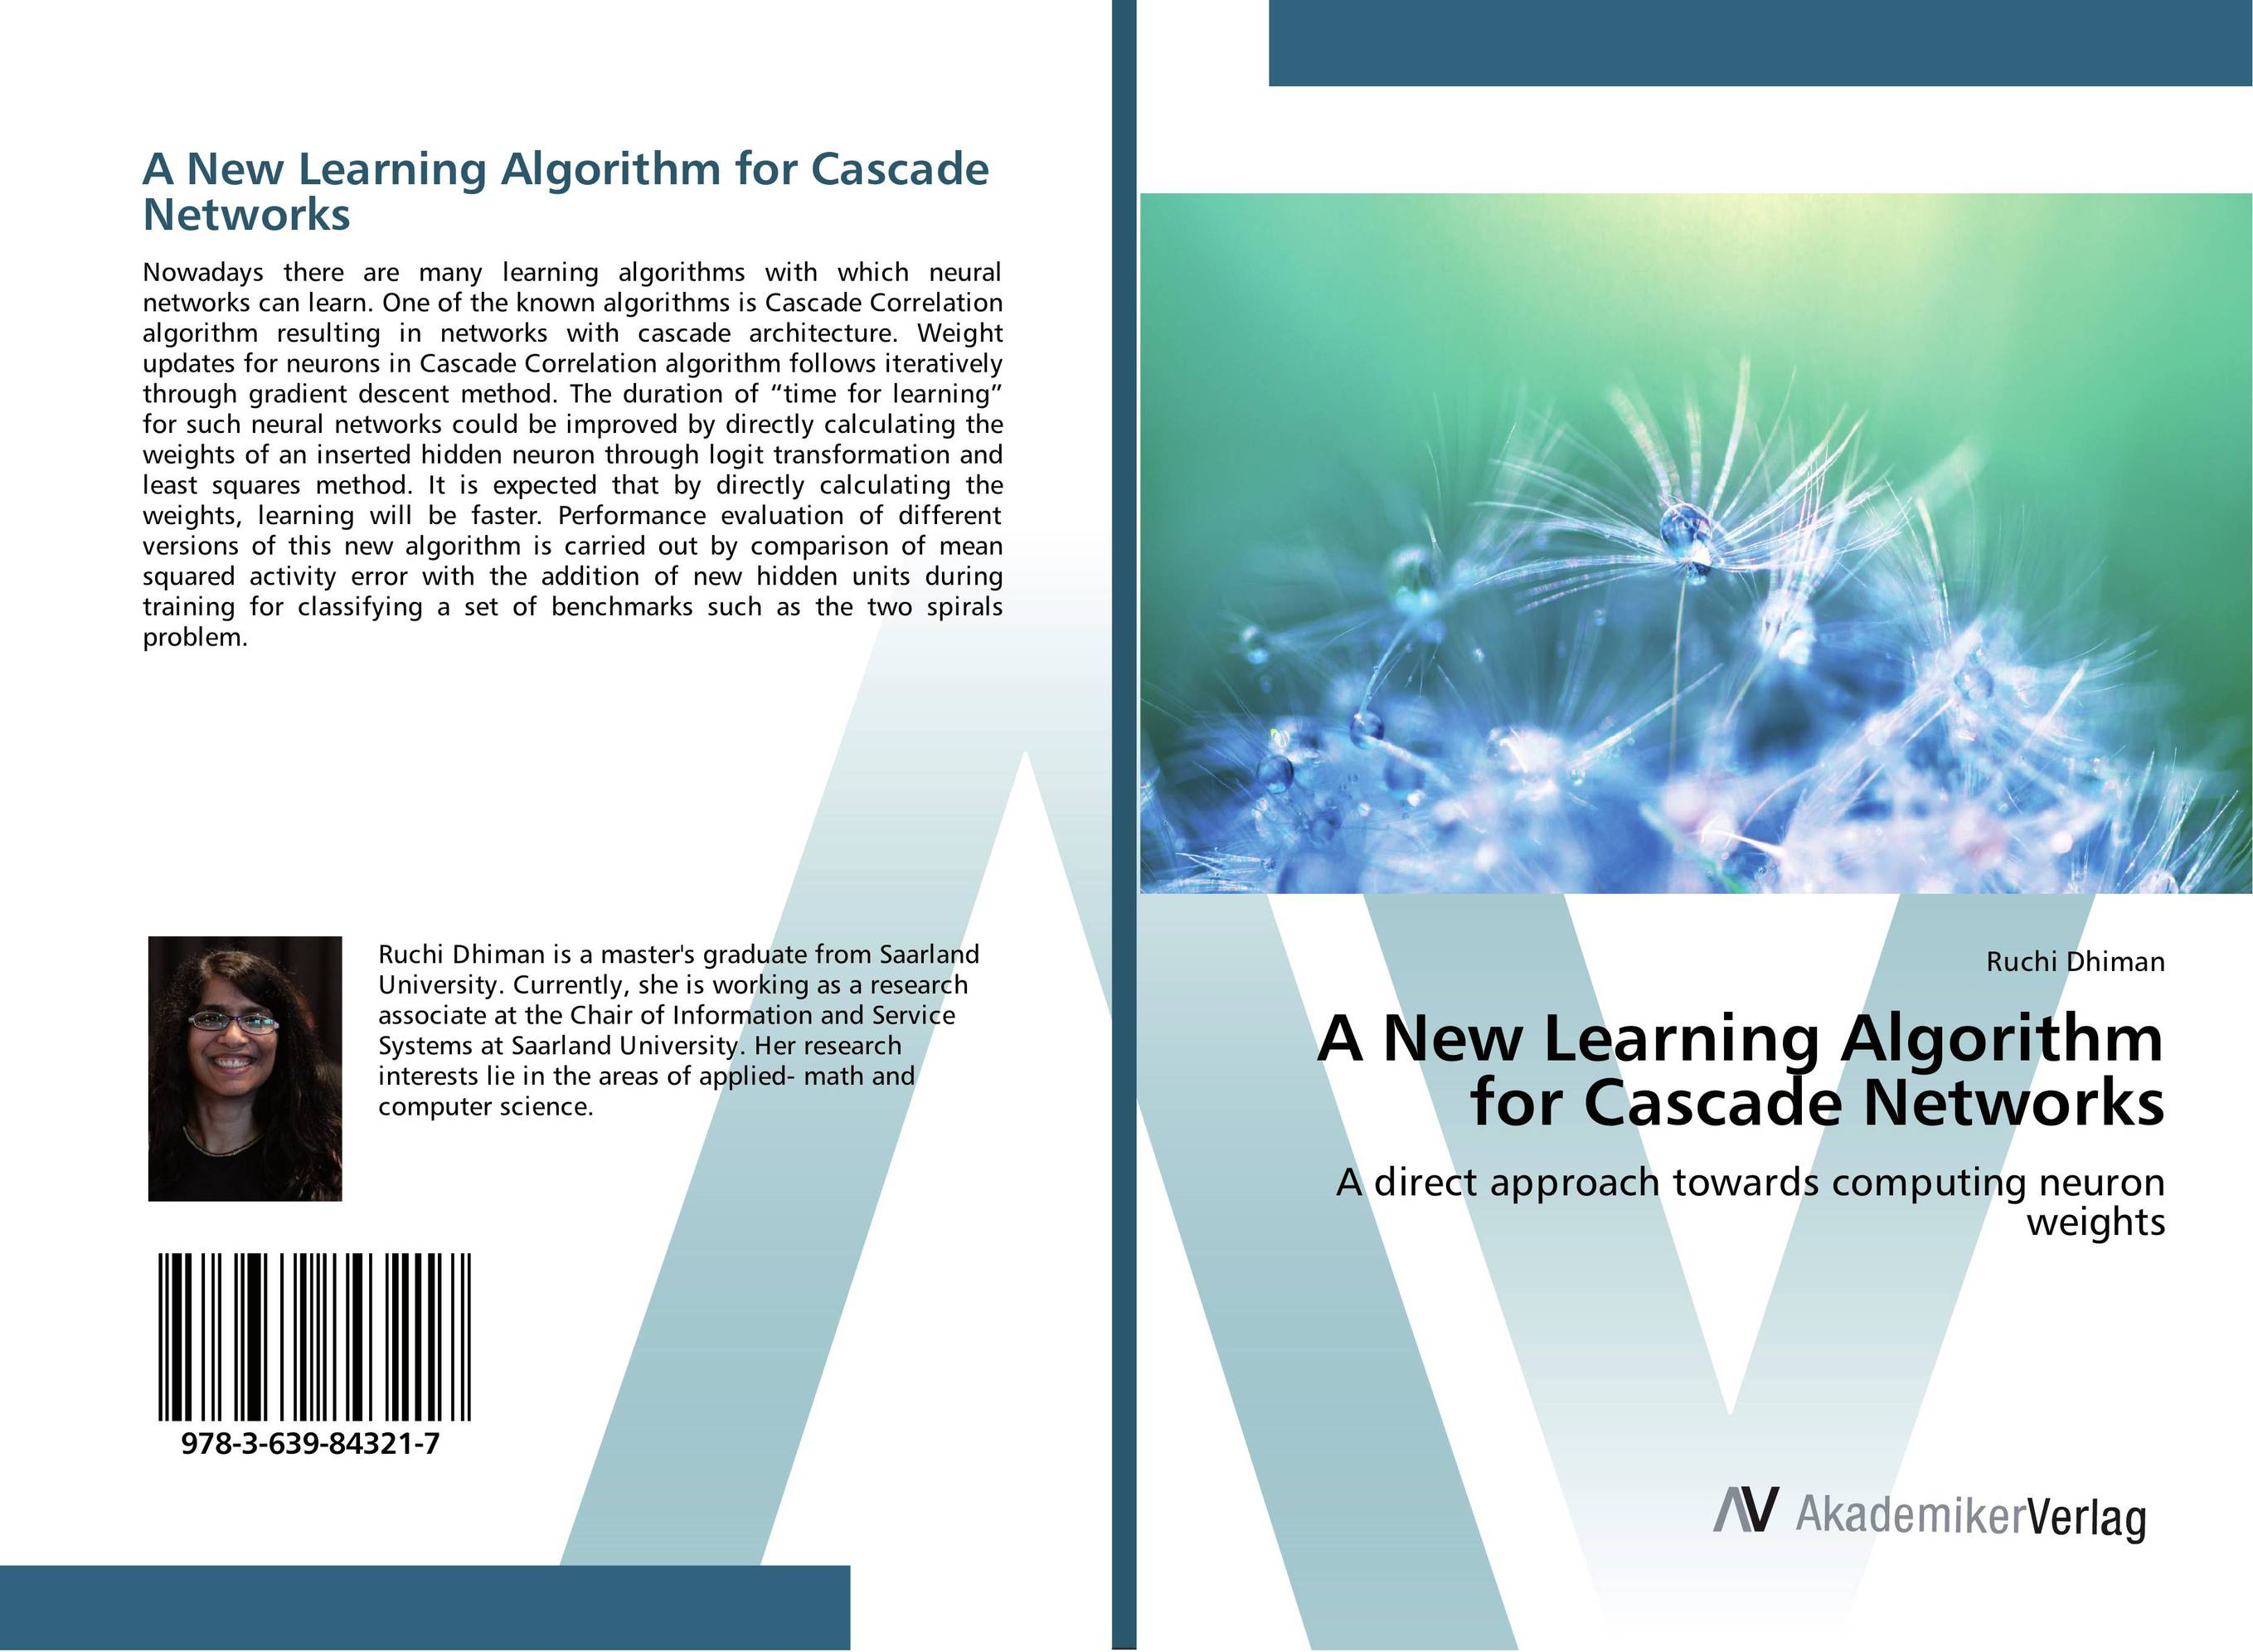 A New Learning Algorithm for Cascade Networks evaluation of aqueous solubility of hydroxamic acids by pls modelling